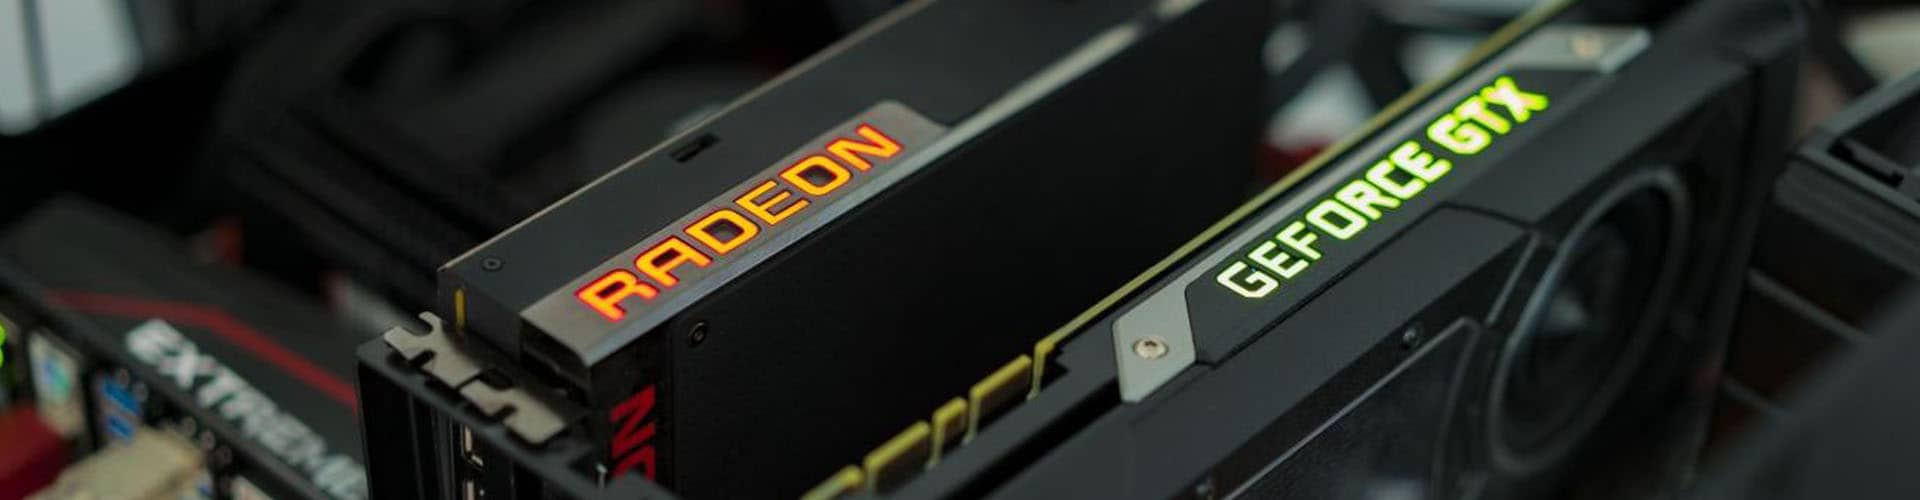 AMD CrossFire vs NVIDIA SLI – What's The Difference?